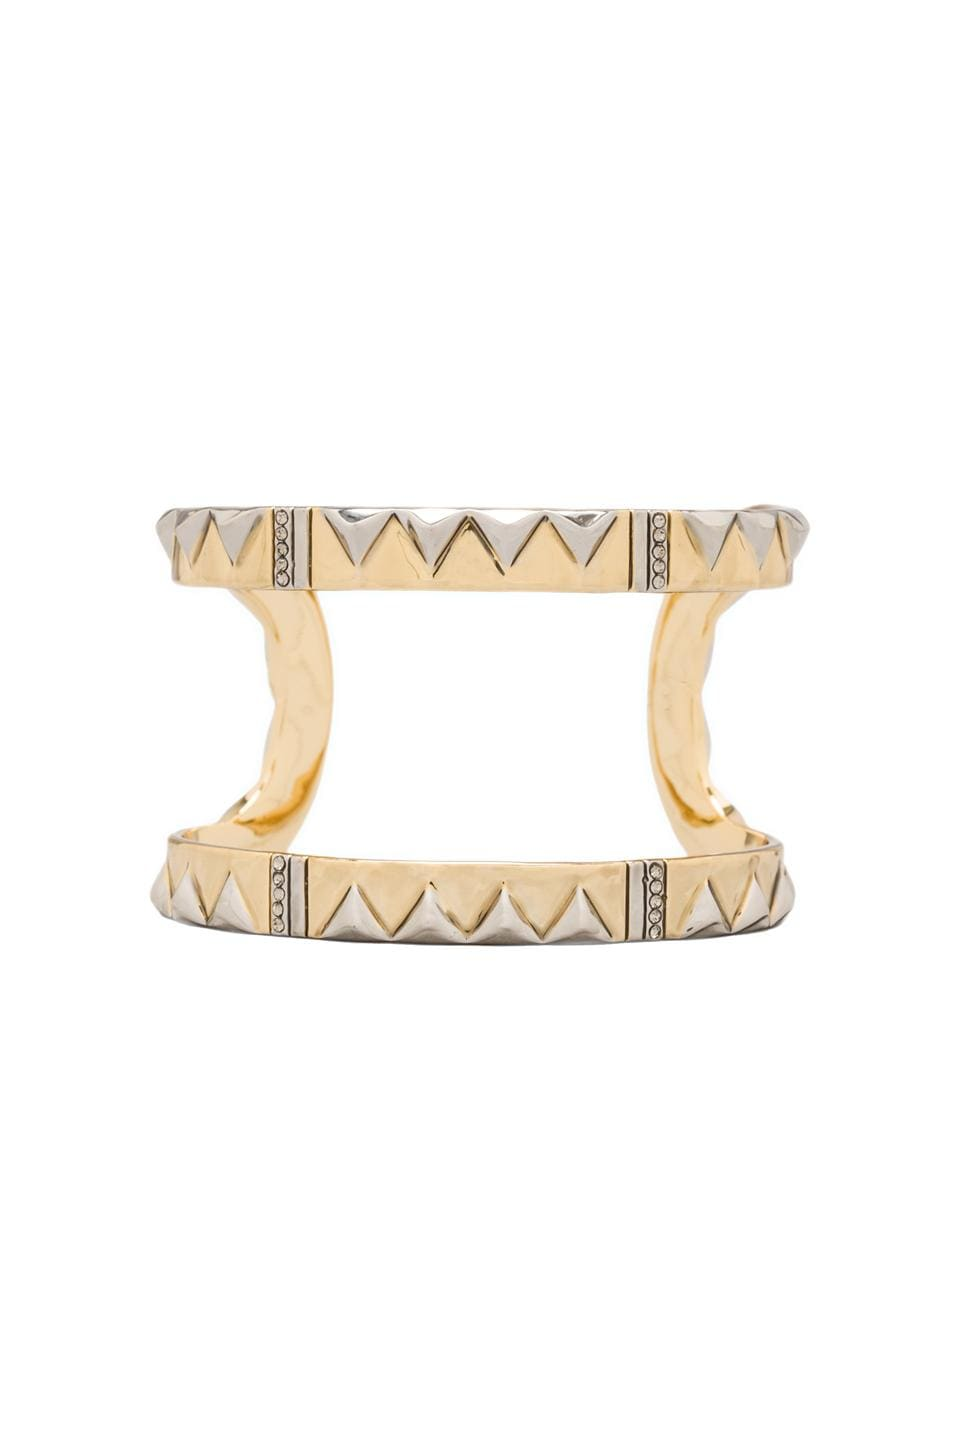 House of Harlow Cusco Crescent Cuff in Two Tone